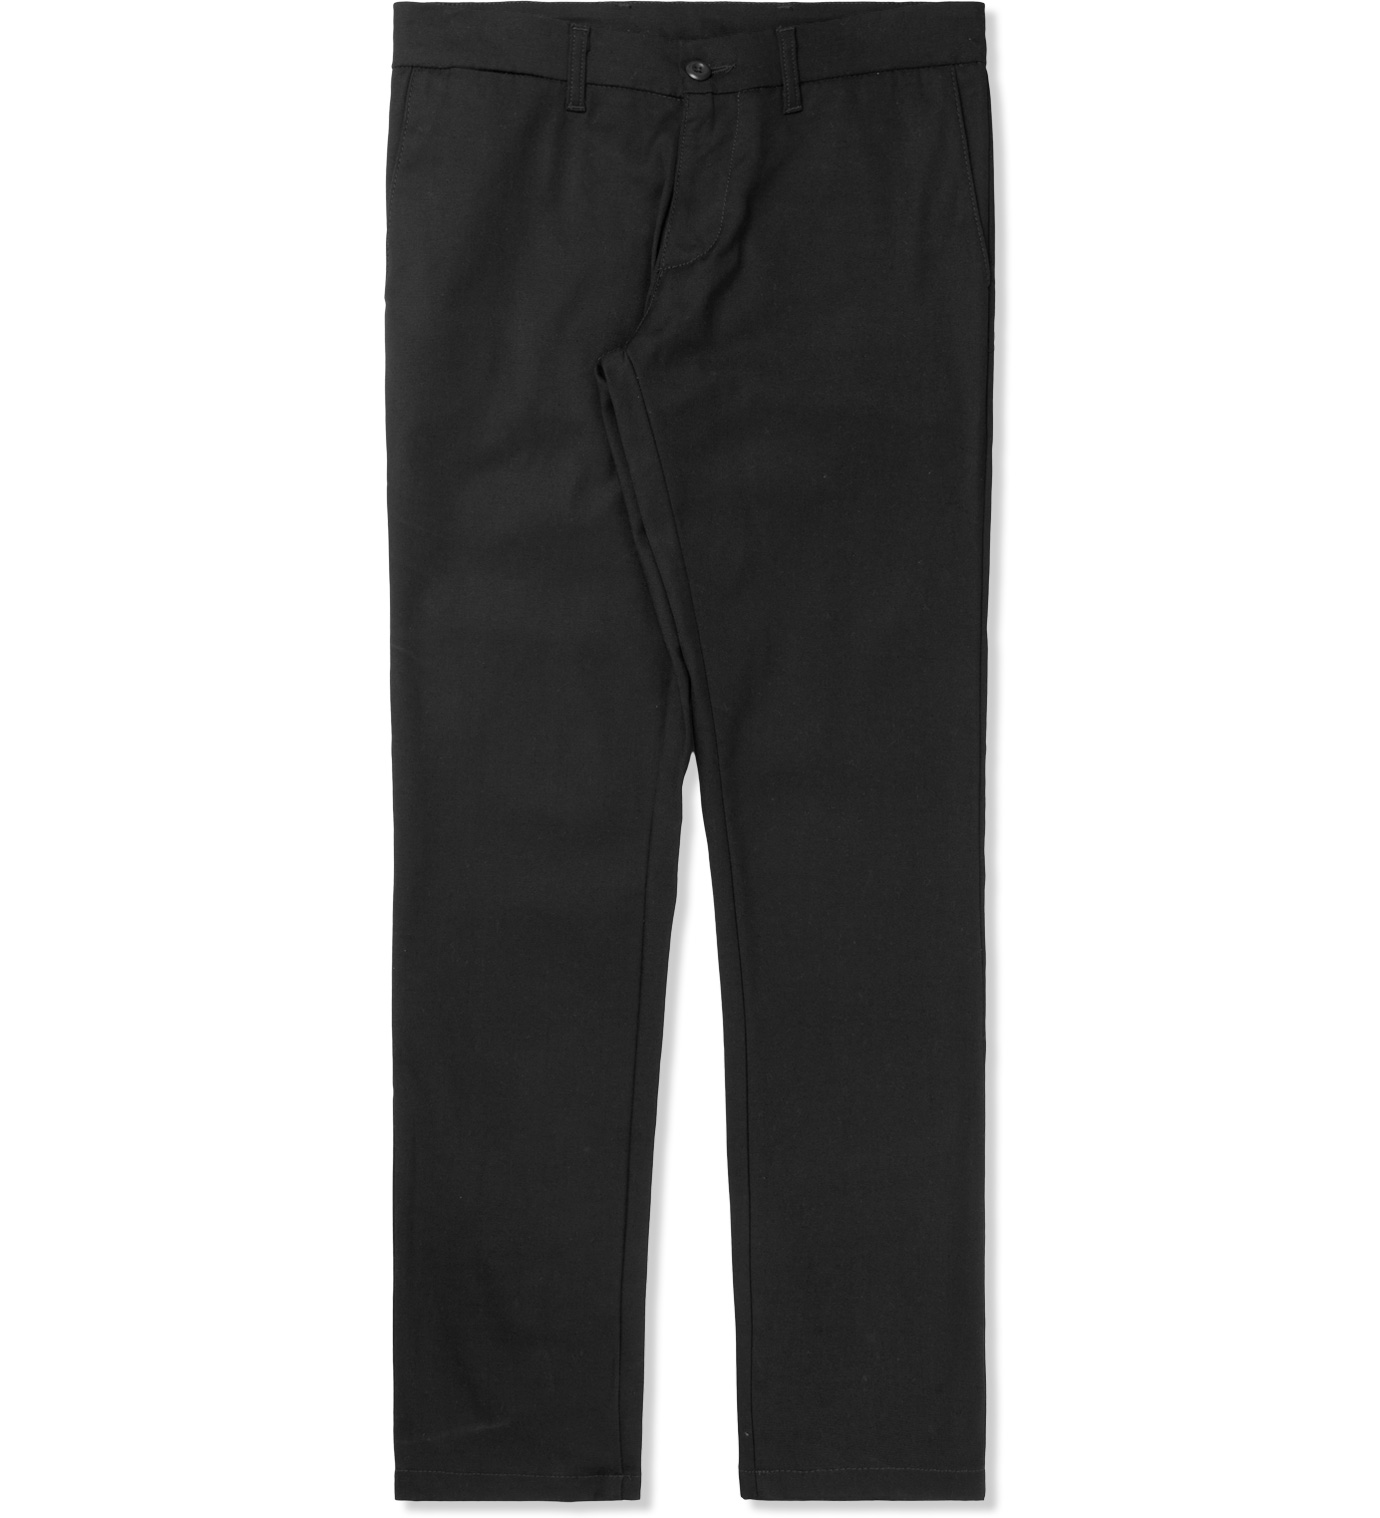 Carhartt WORK IN PROGRESS Black Sid Pants